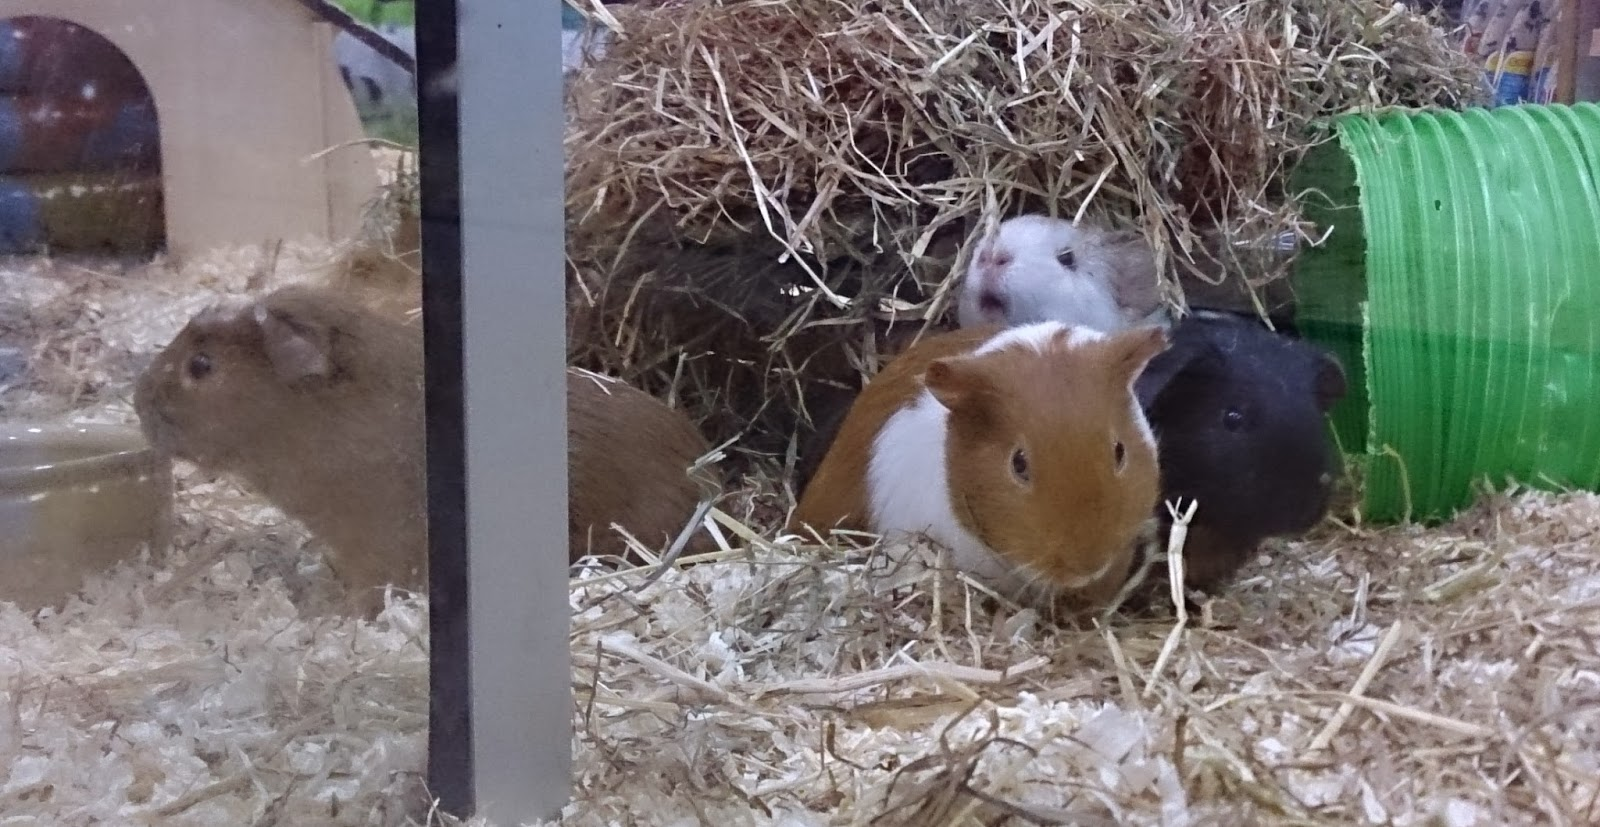 guinea pigs gerbils hamsters chinchillas rats rabbits furry animals pets at home pet animal tunnel hay cage wheel running cleaning licking grooming dog clothes collars leads jackets coats jumpers treats food toys